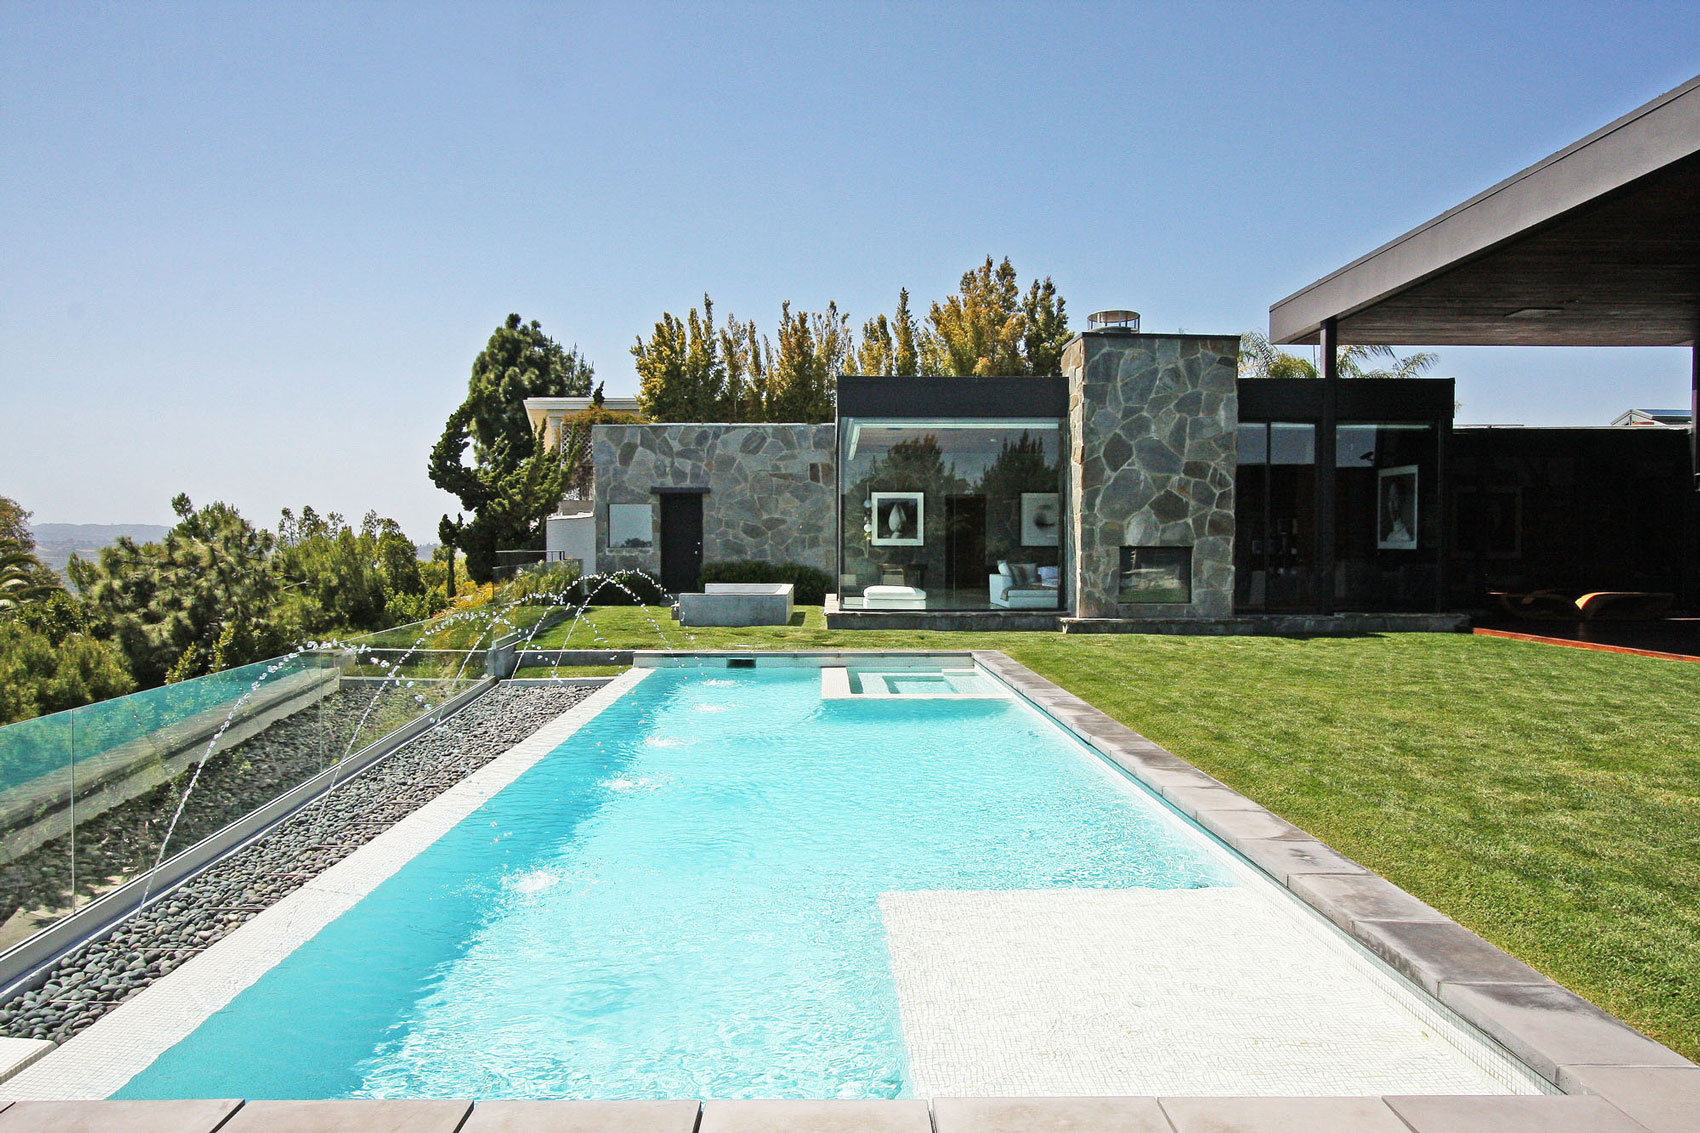 Swimming Pool, Fountains, Lawn, Revamped Interior in Beverly Hills